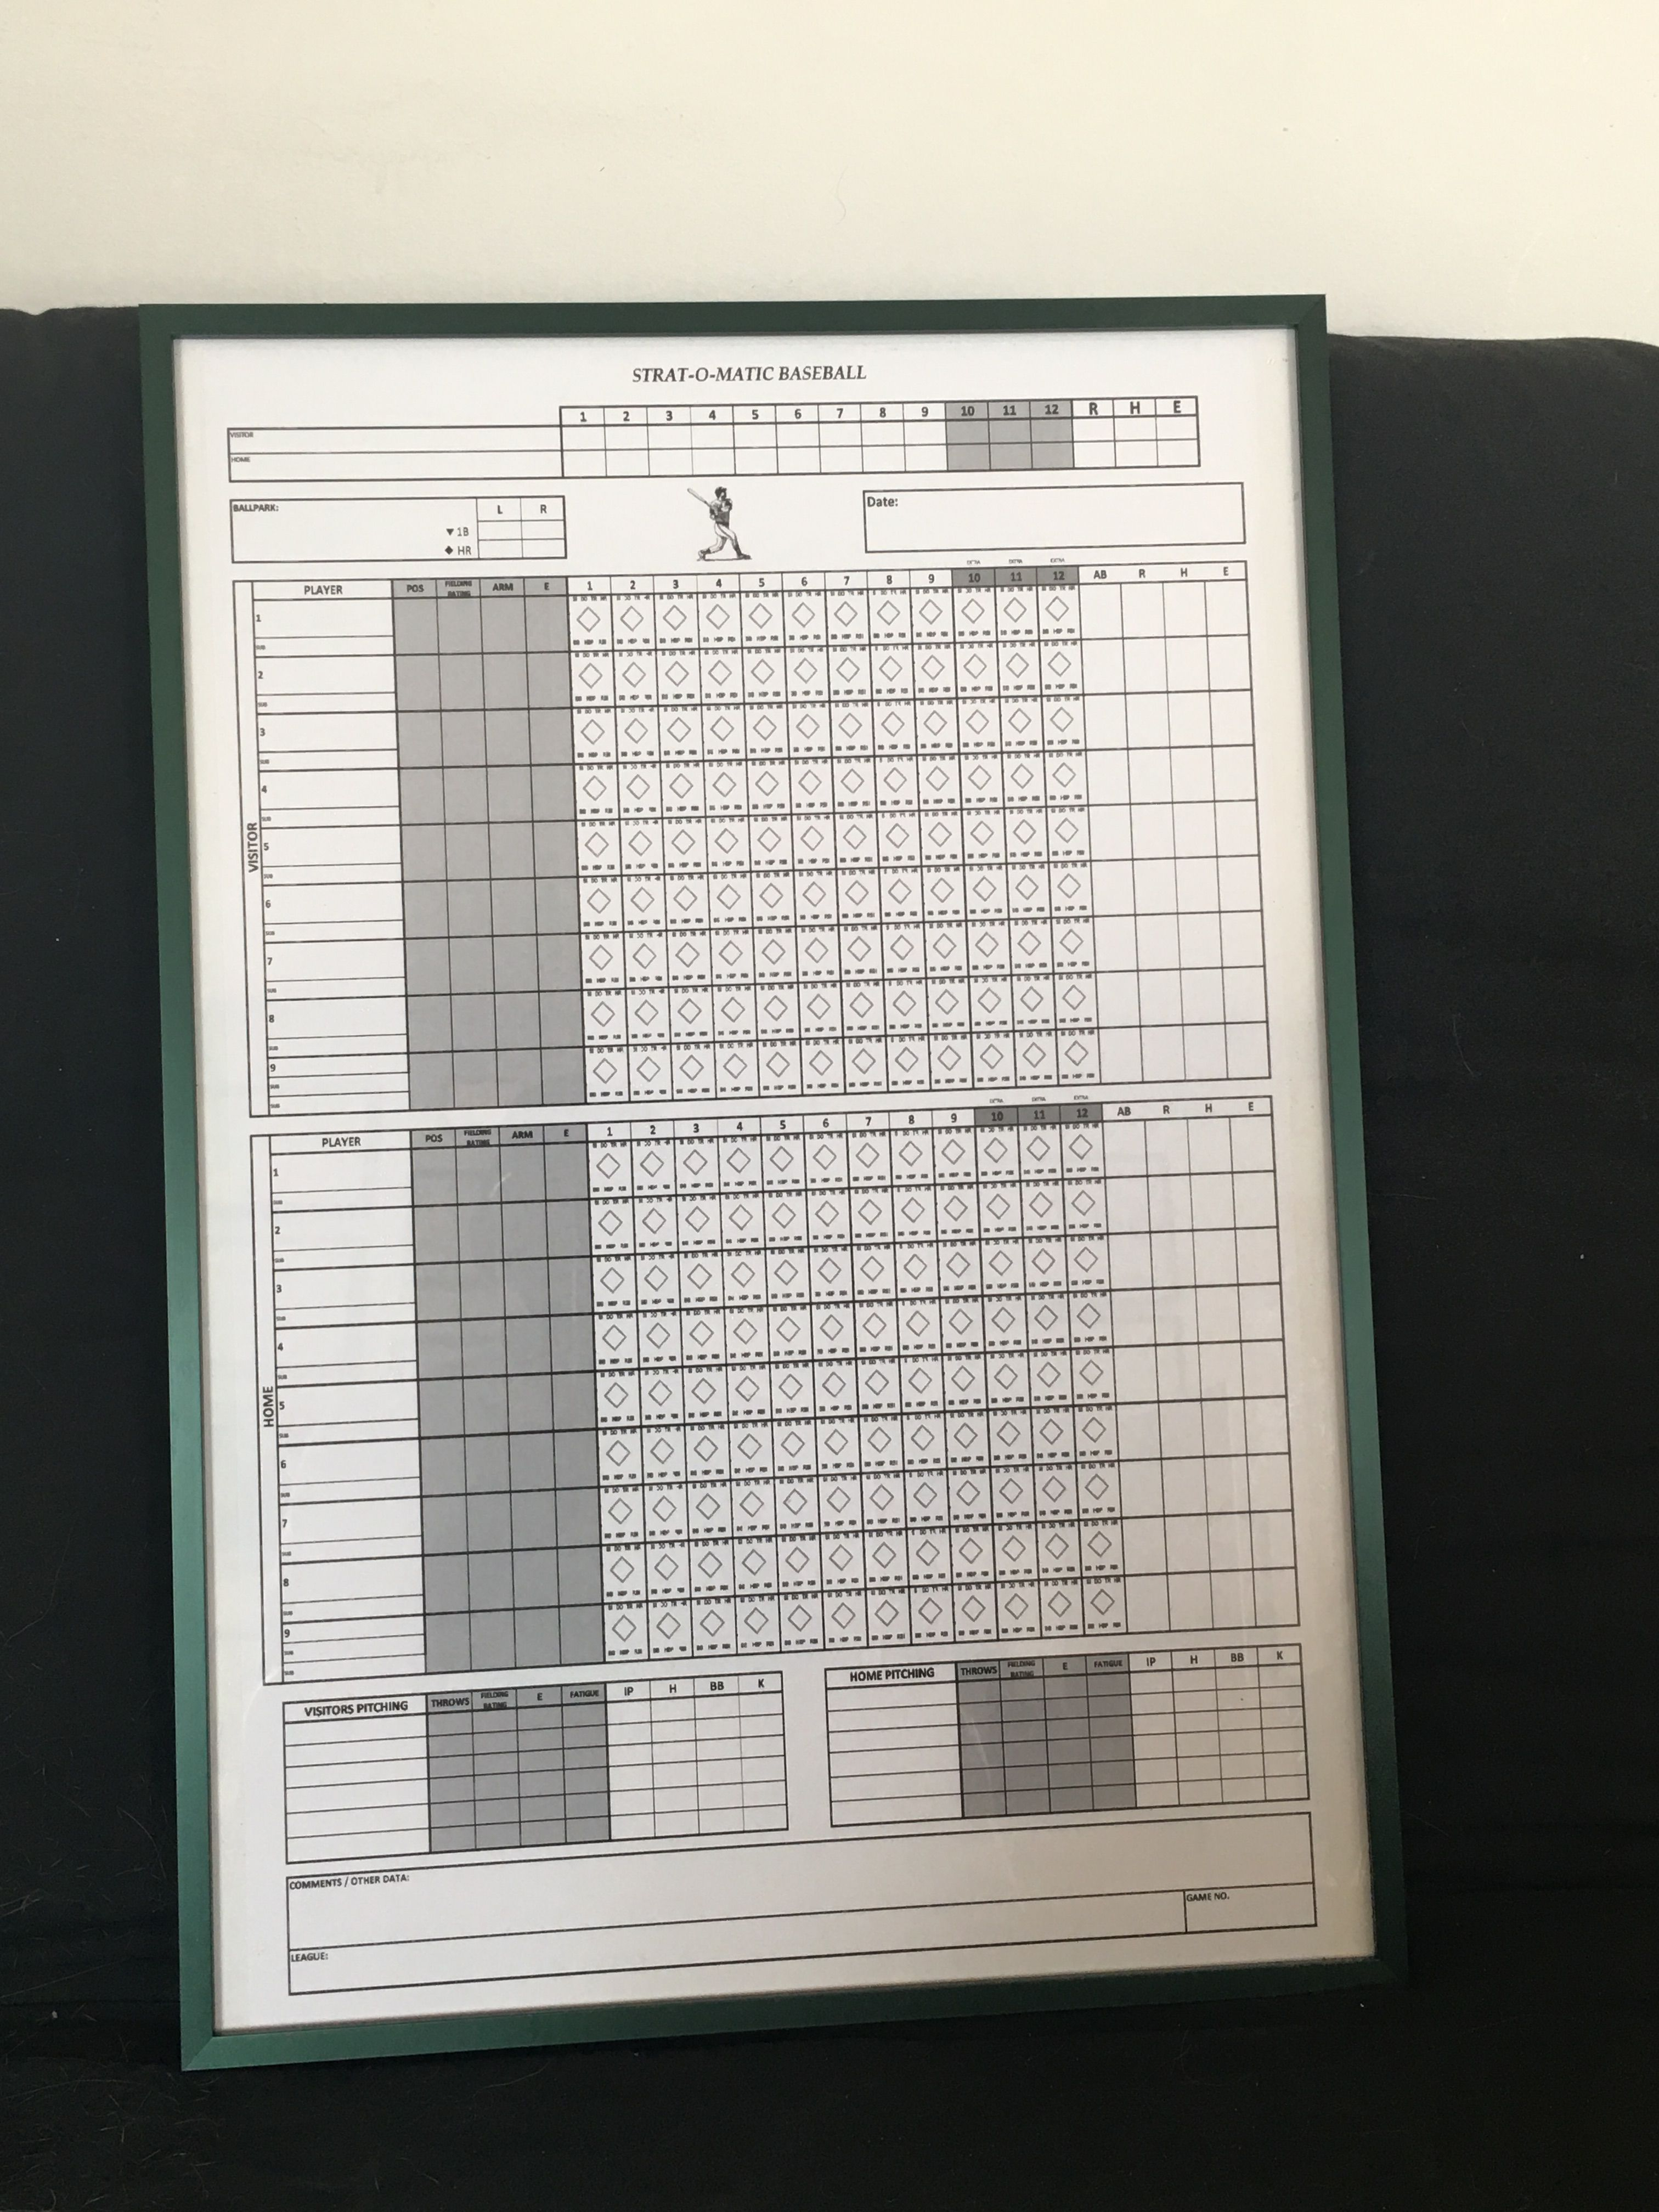 This Is An Enlarged Strat O Matic Baseball Score Sheet That A Local